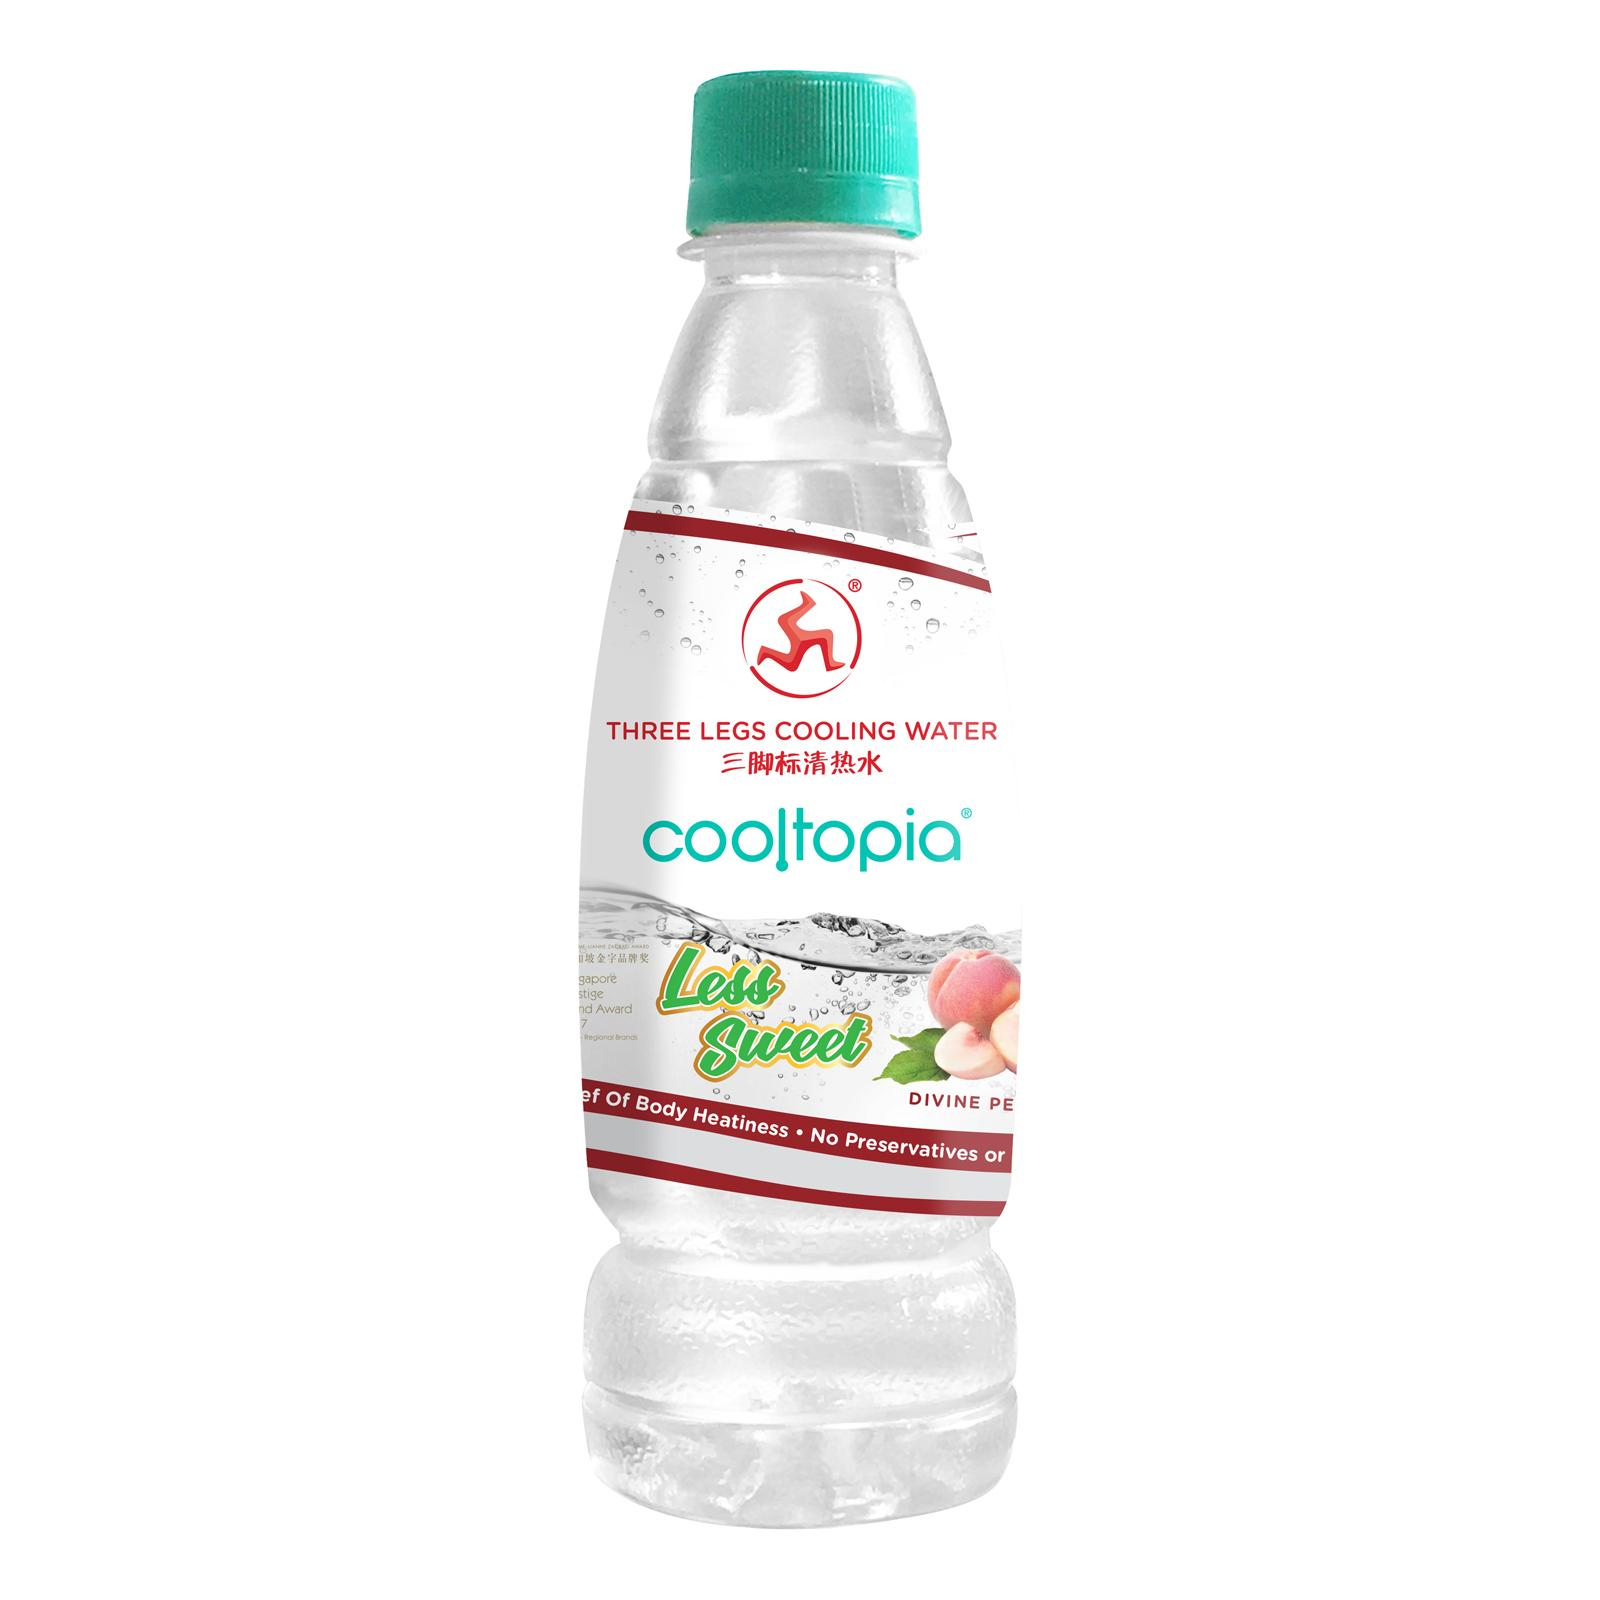 Three Legs Cooltopia Divine Peach Cooling Water